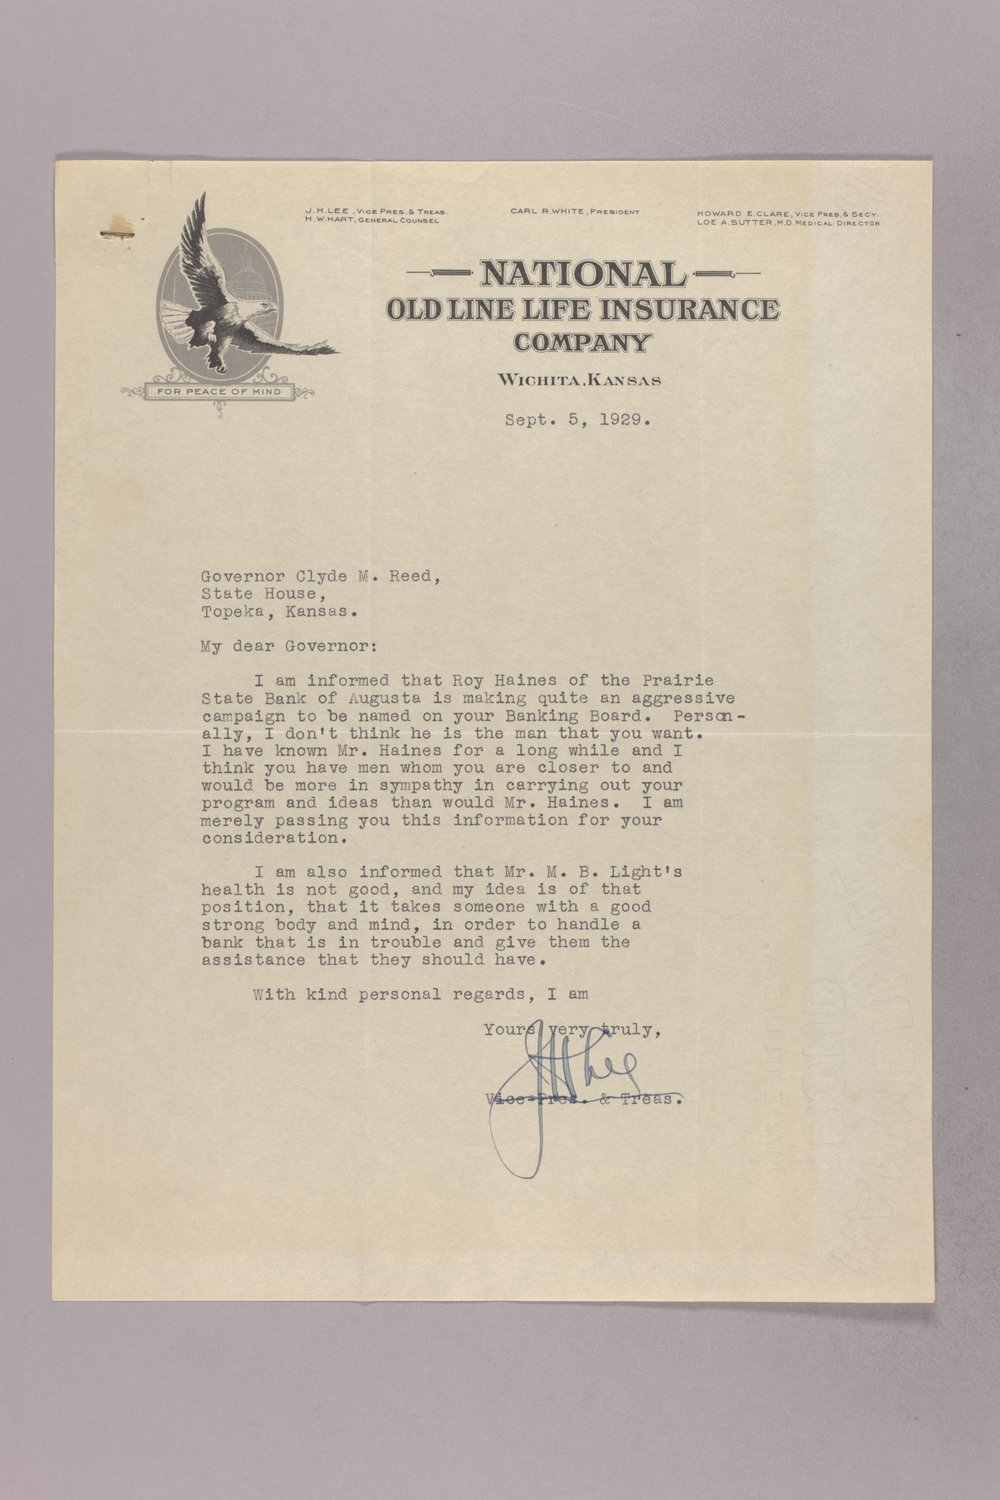 Governor Clyde M. Reed correspondence, Banking Board - 7